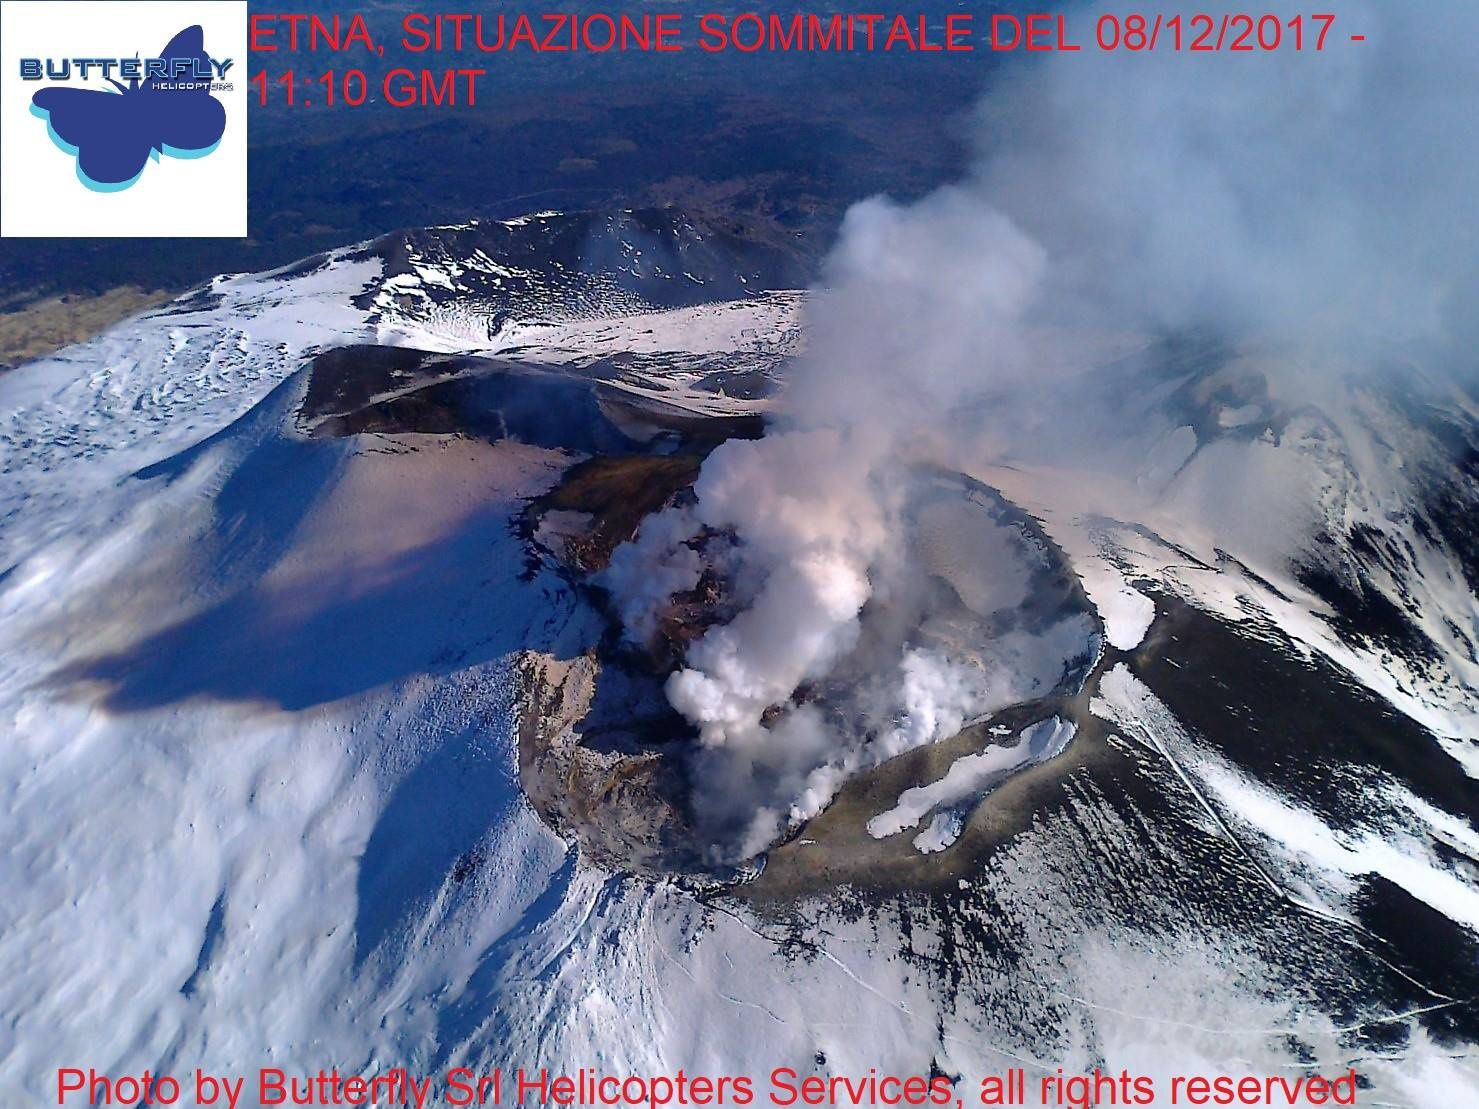 Etna - 08.12.2017 / 11:10 GMT - photo J.Nasi / Butterfly Helocopters